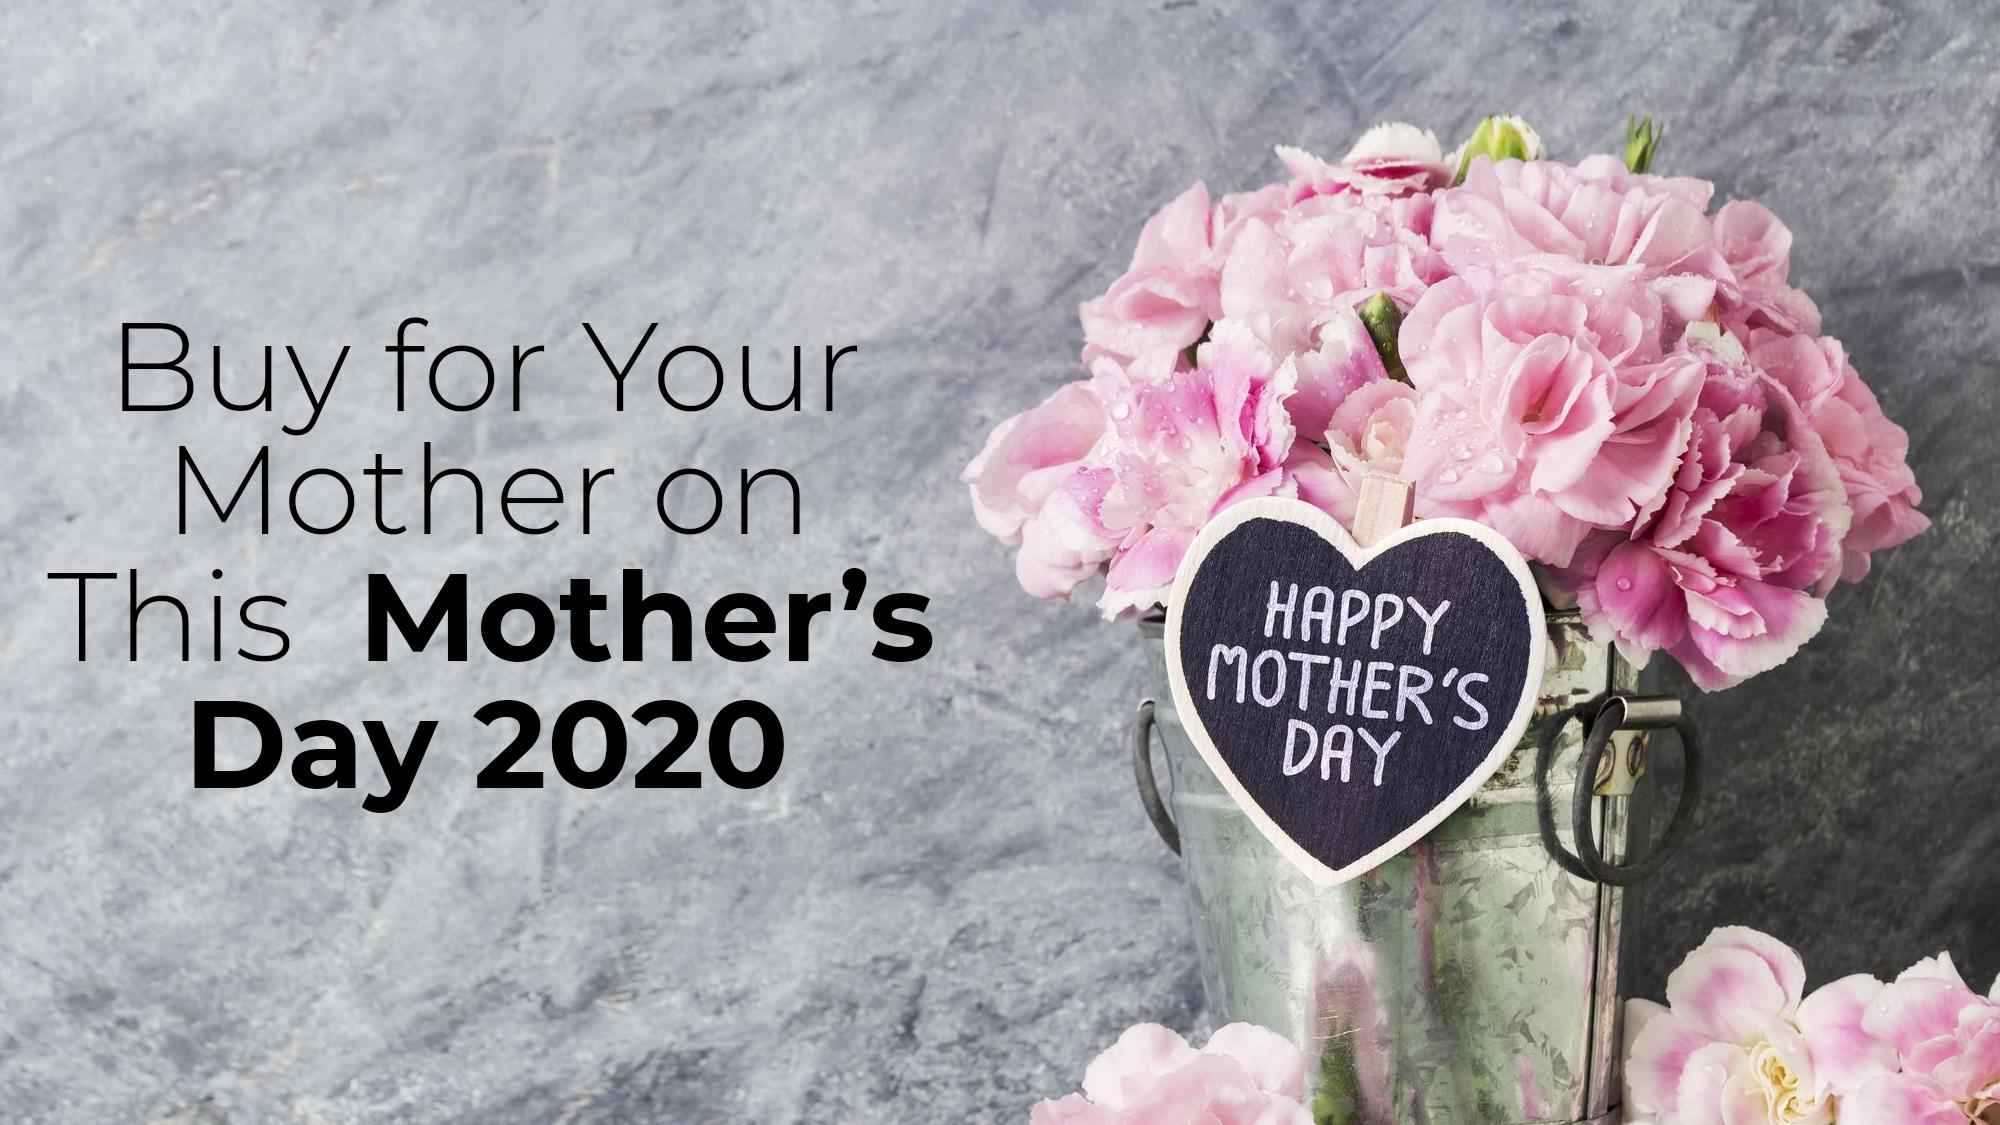 Buy For Your Mother on This Mother's day 2020